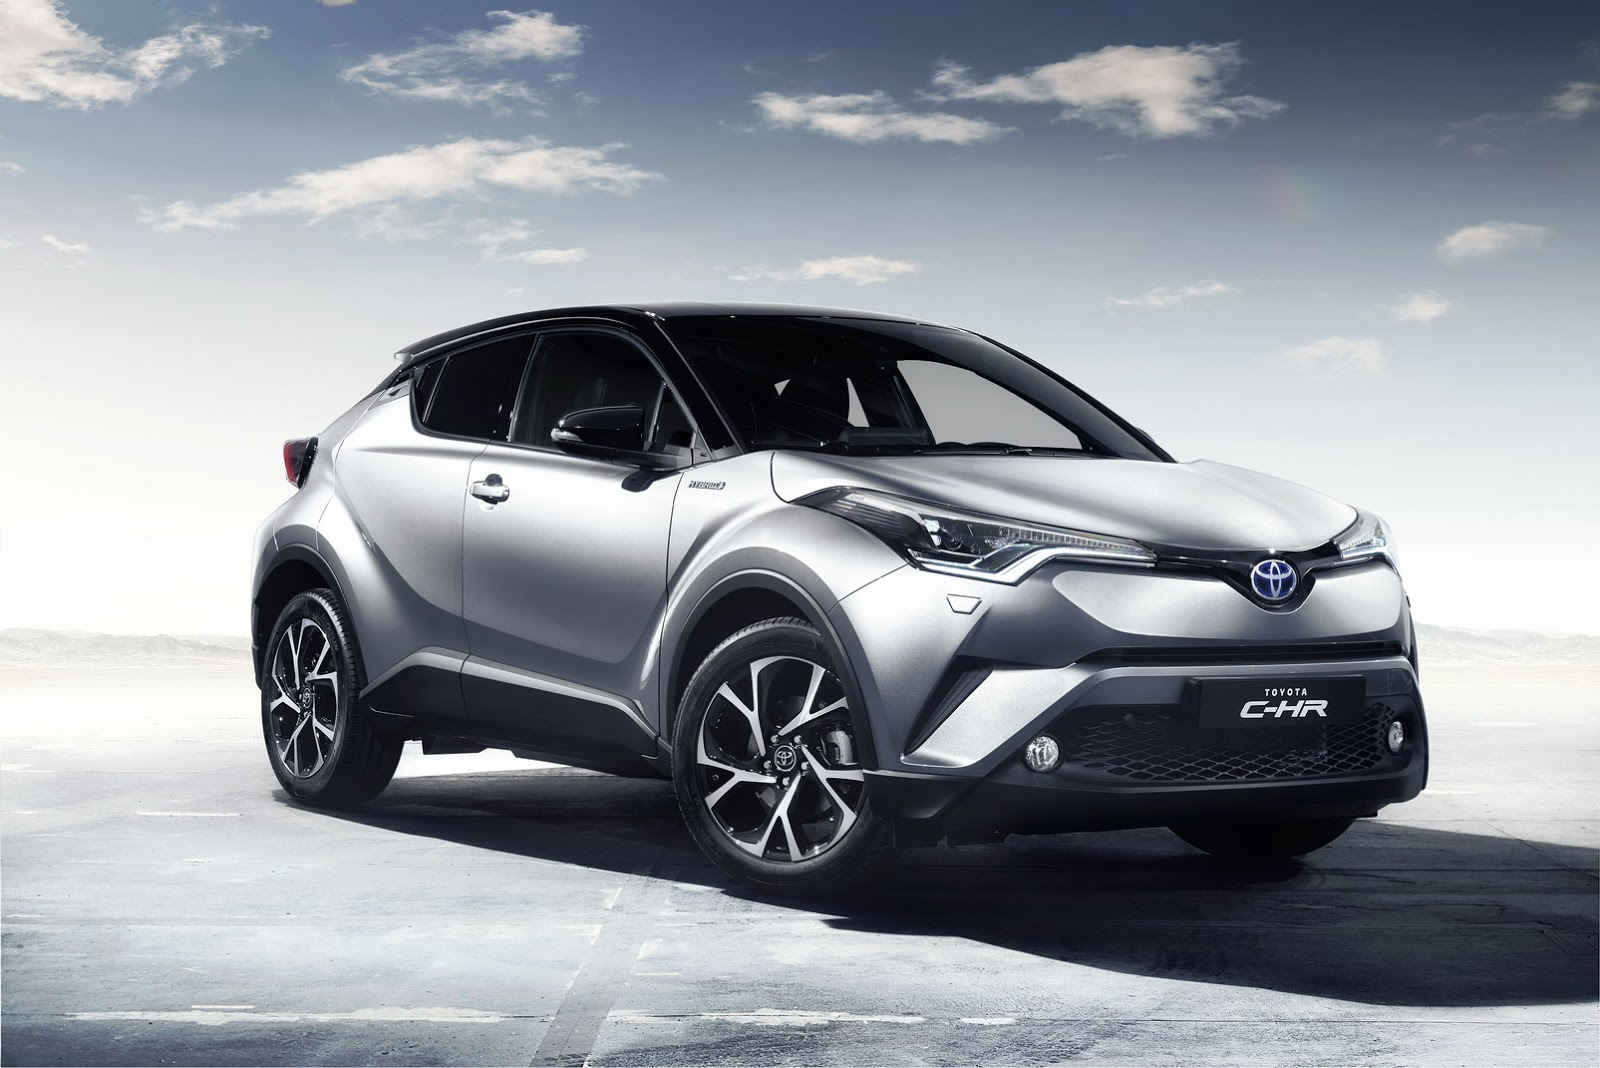 toyota c-hr - another great addition to the global crossover